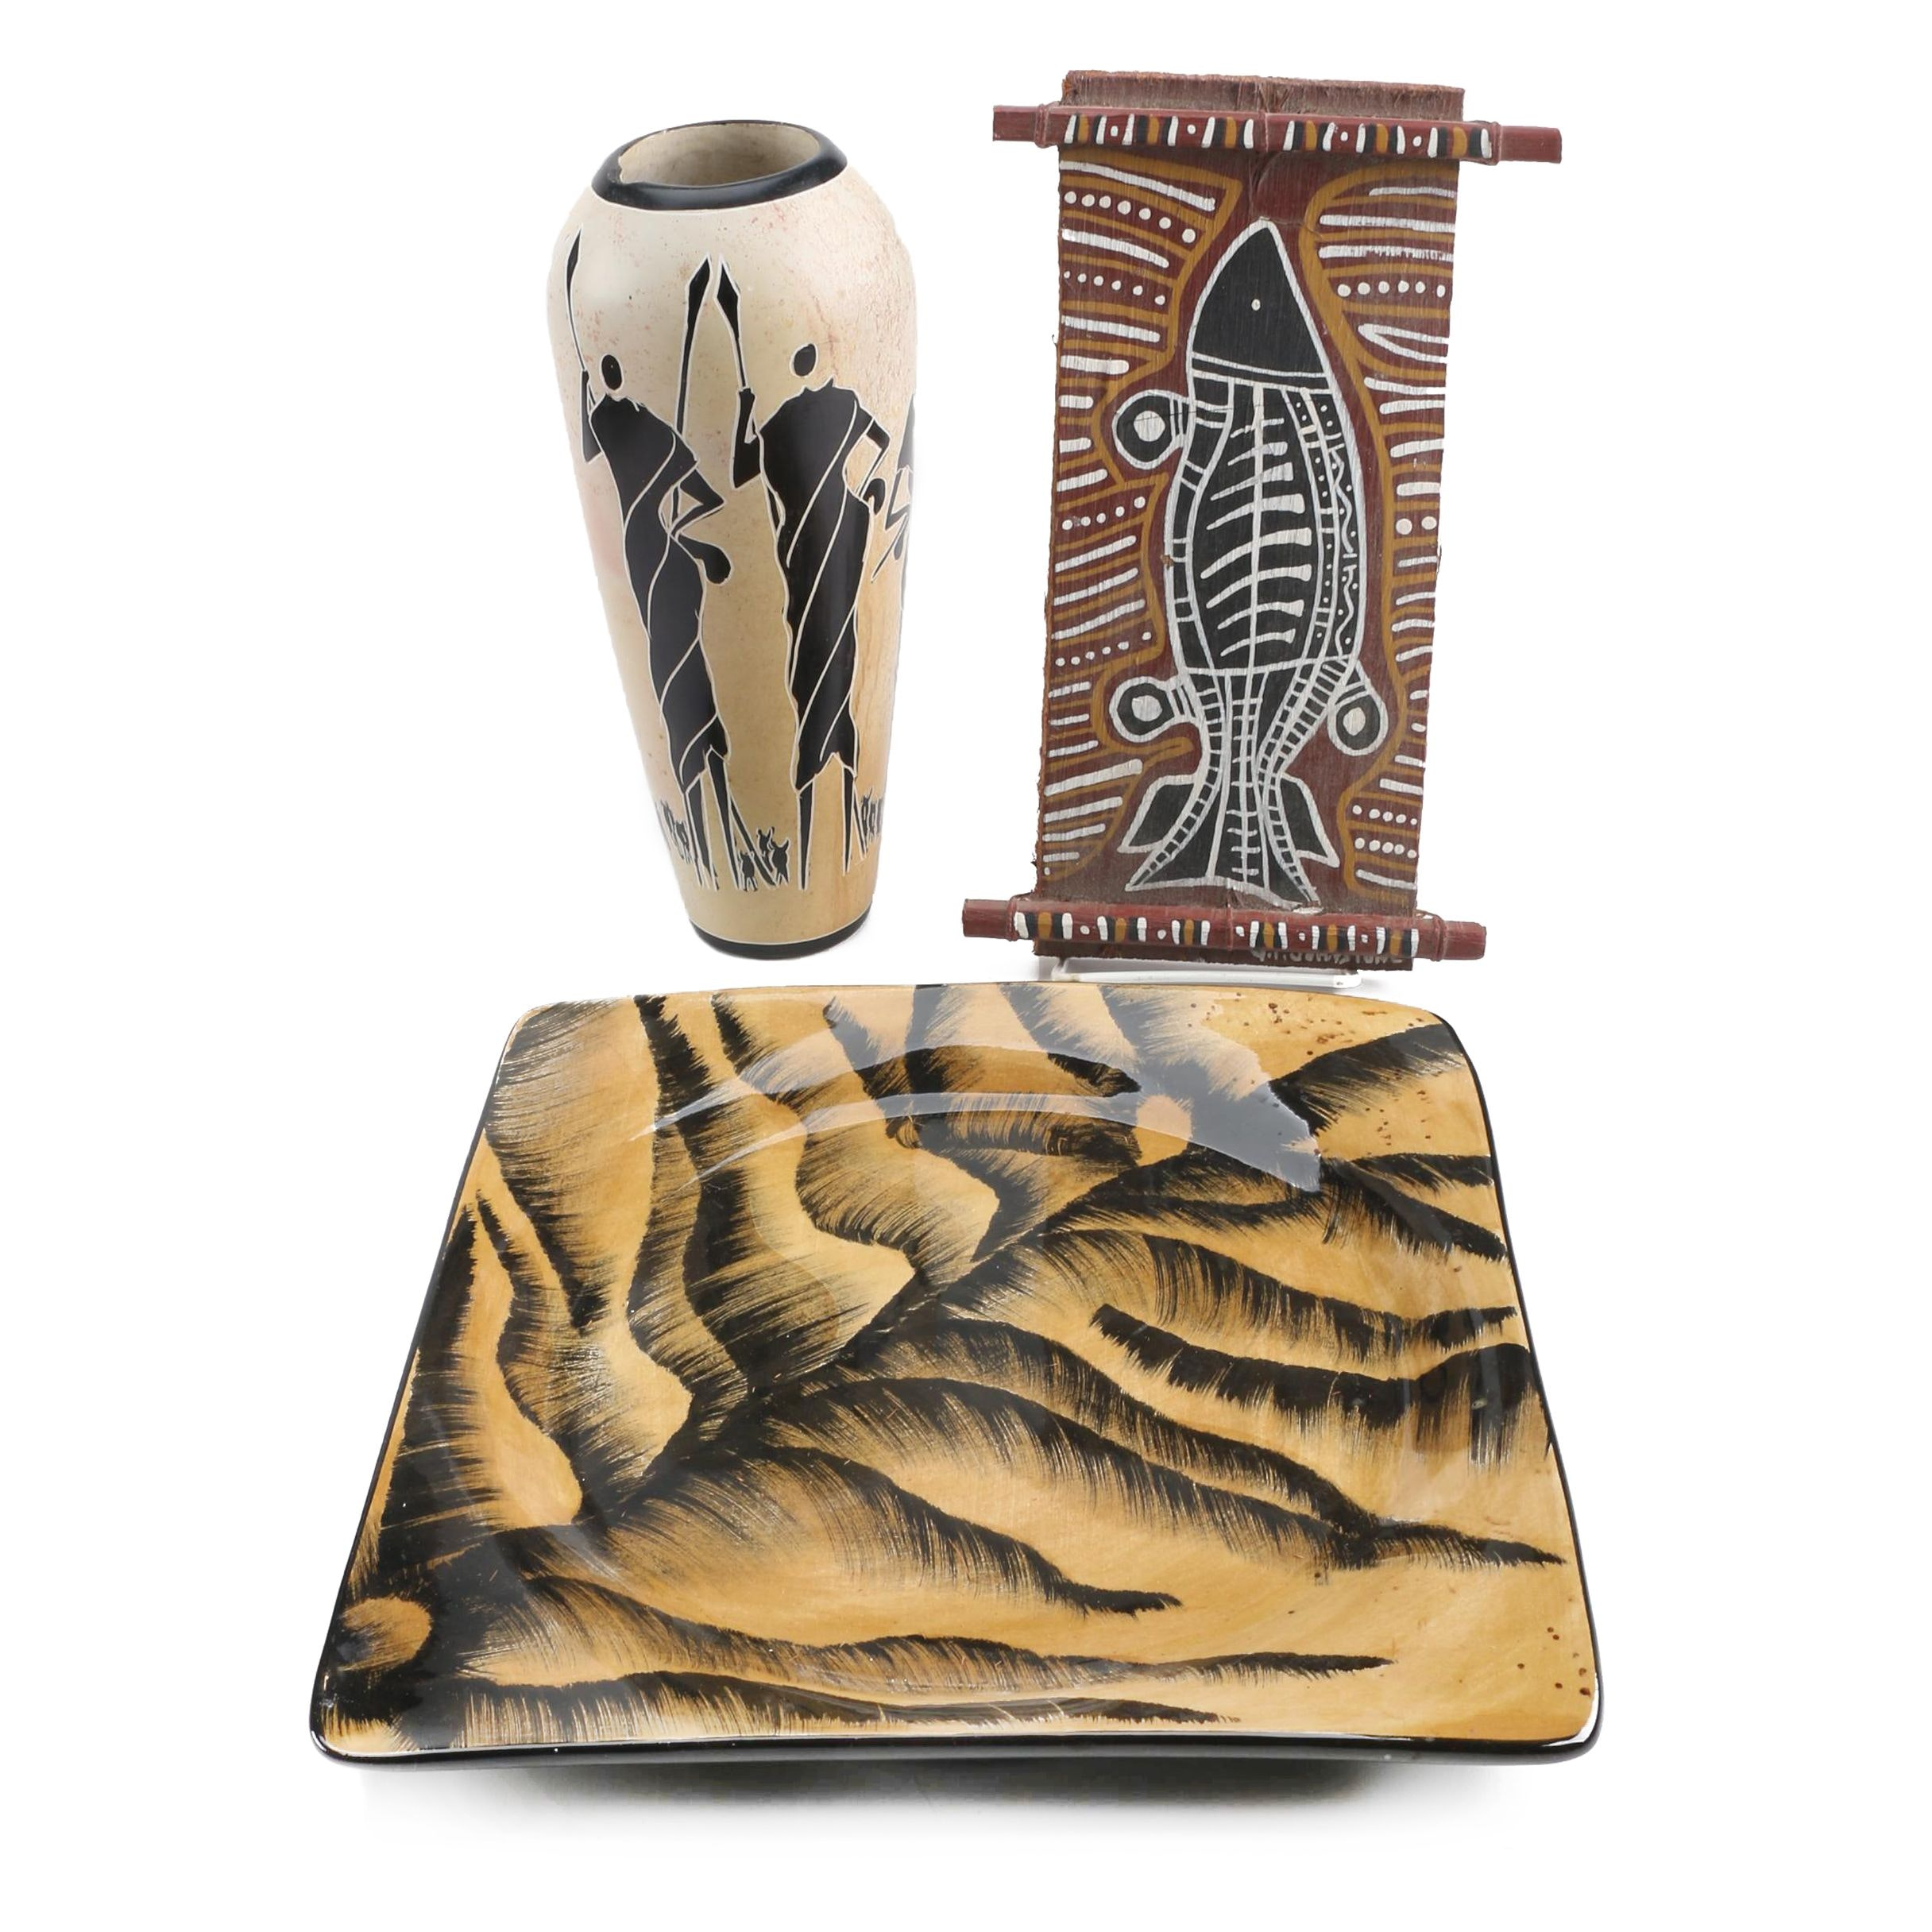 Decorative Vase, Platter and Wall Hanging